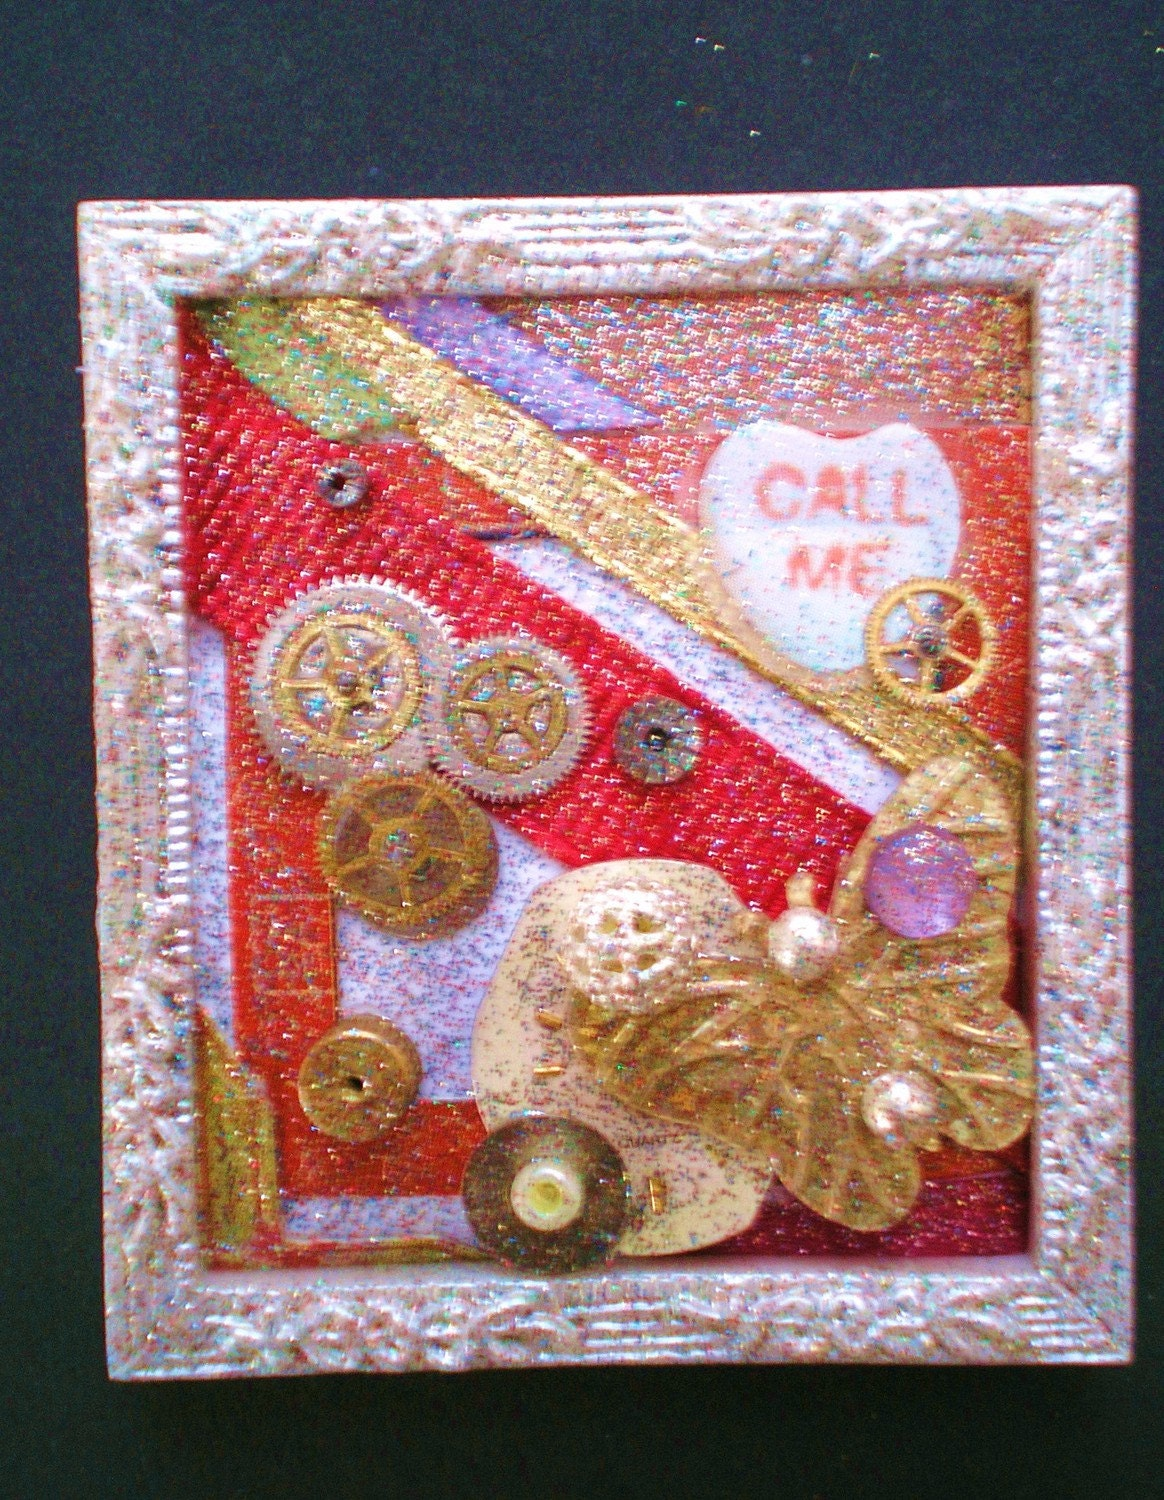 DEPARTURE - Tiny Collage Mixed Media OOAK Framed Signed with Jewels Gold Butterfly Heart Ribbon Watch Parts